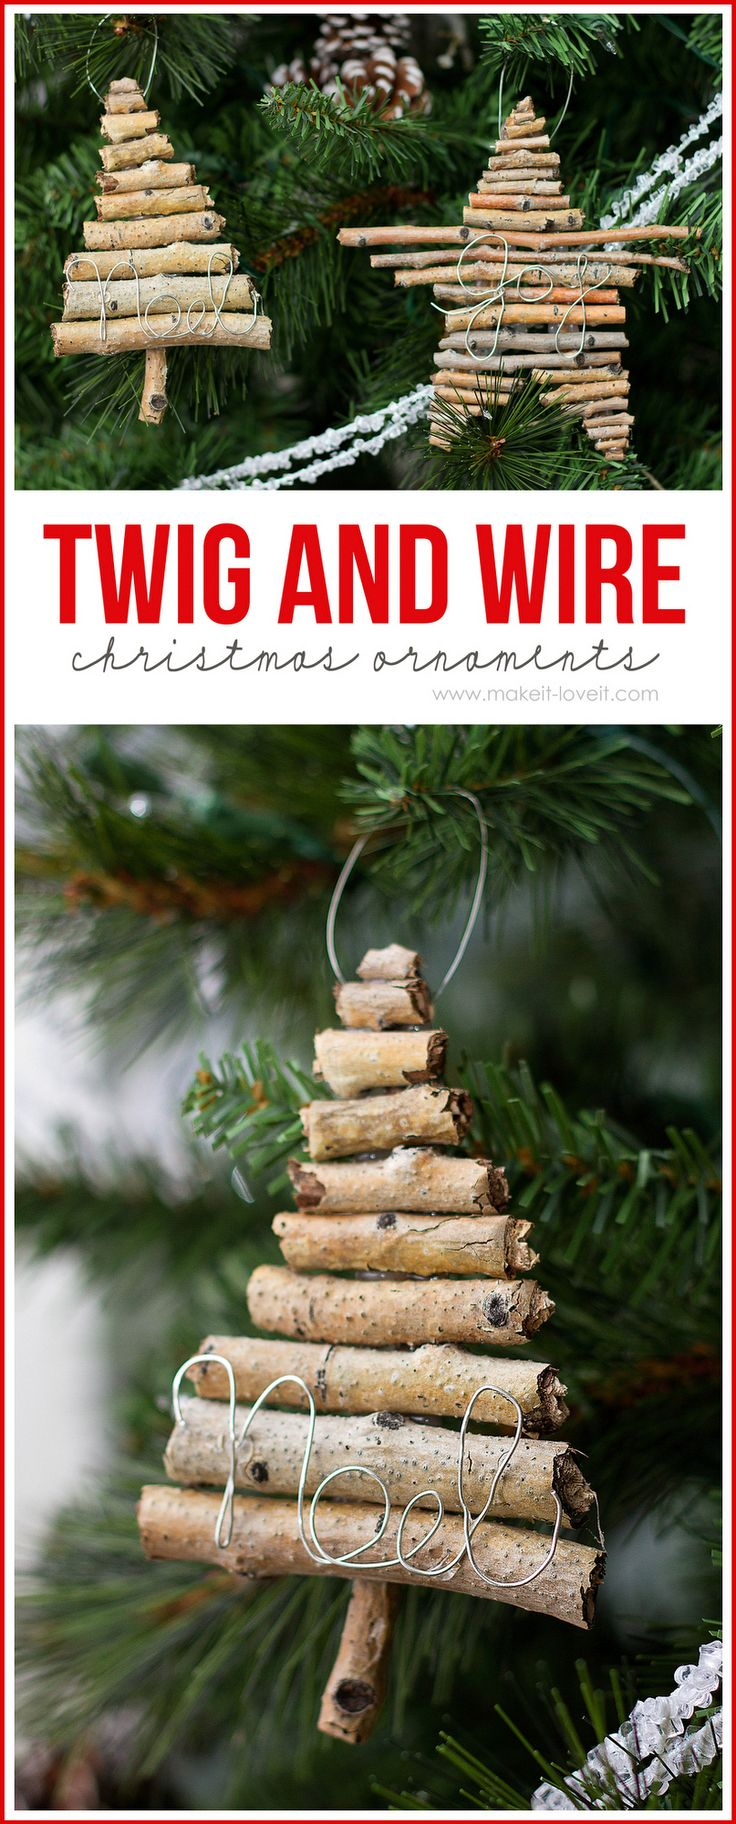 Twig and Wire Christmas Ornaments by Make It and Love It